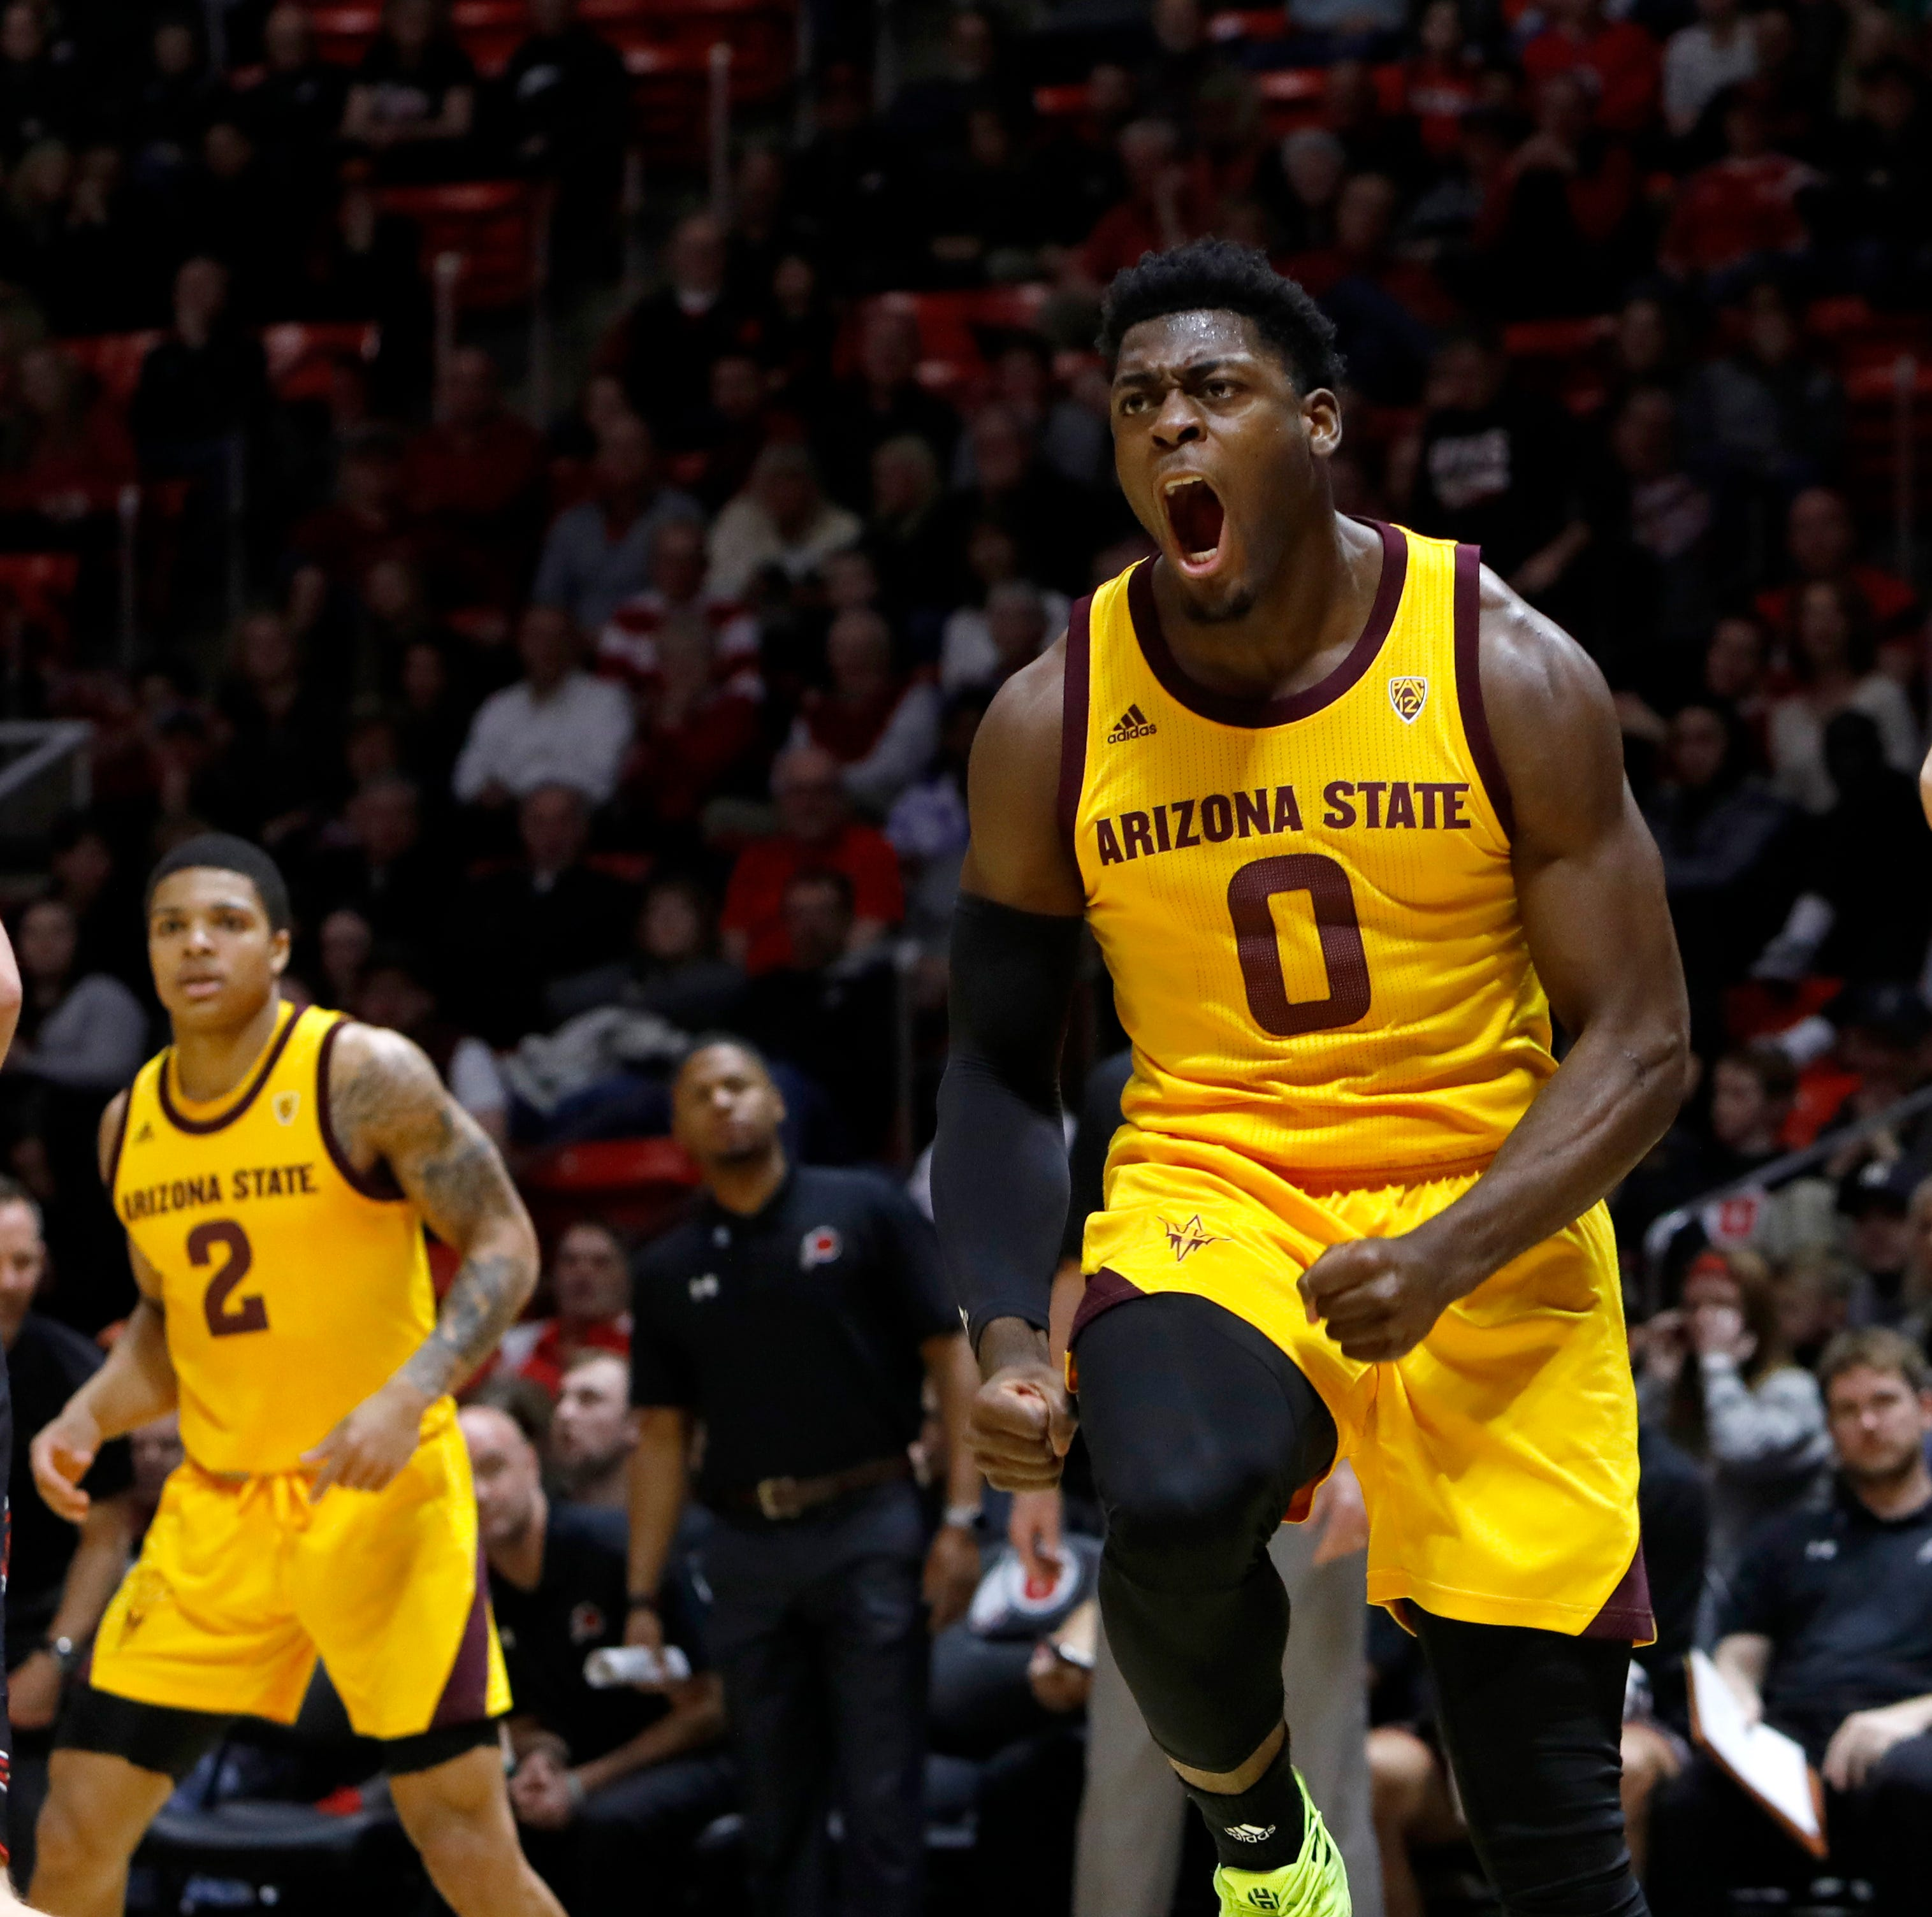 NBA mock drafts: Is Luguentz Dort making mistake leaving Arizona State for 2019 NBA draft?